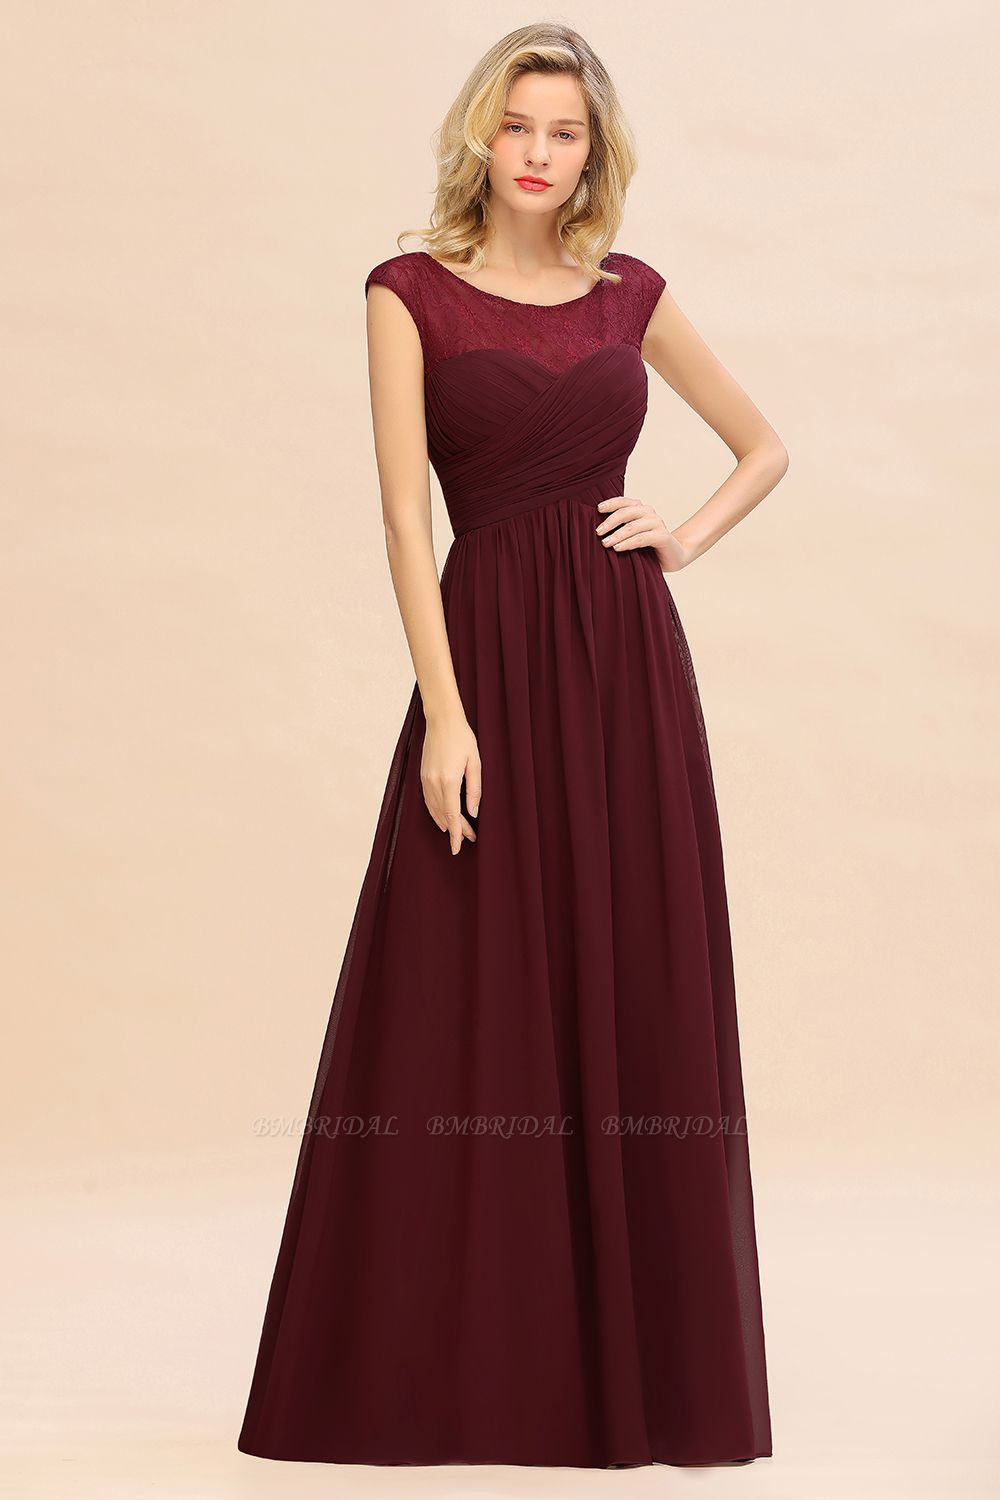 BMbridal Modest Burgundy Chiffon Sleeveless Ruffle Bridesmaid Dress Affordable